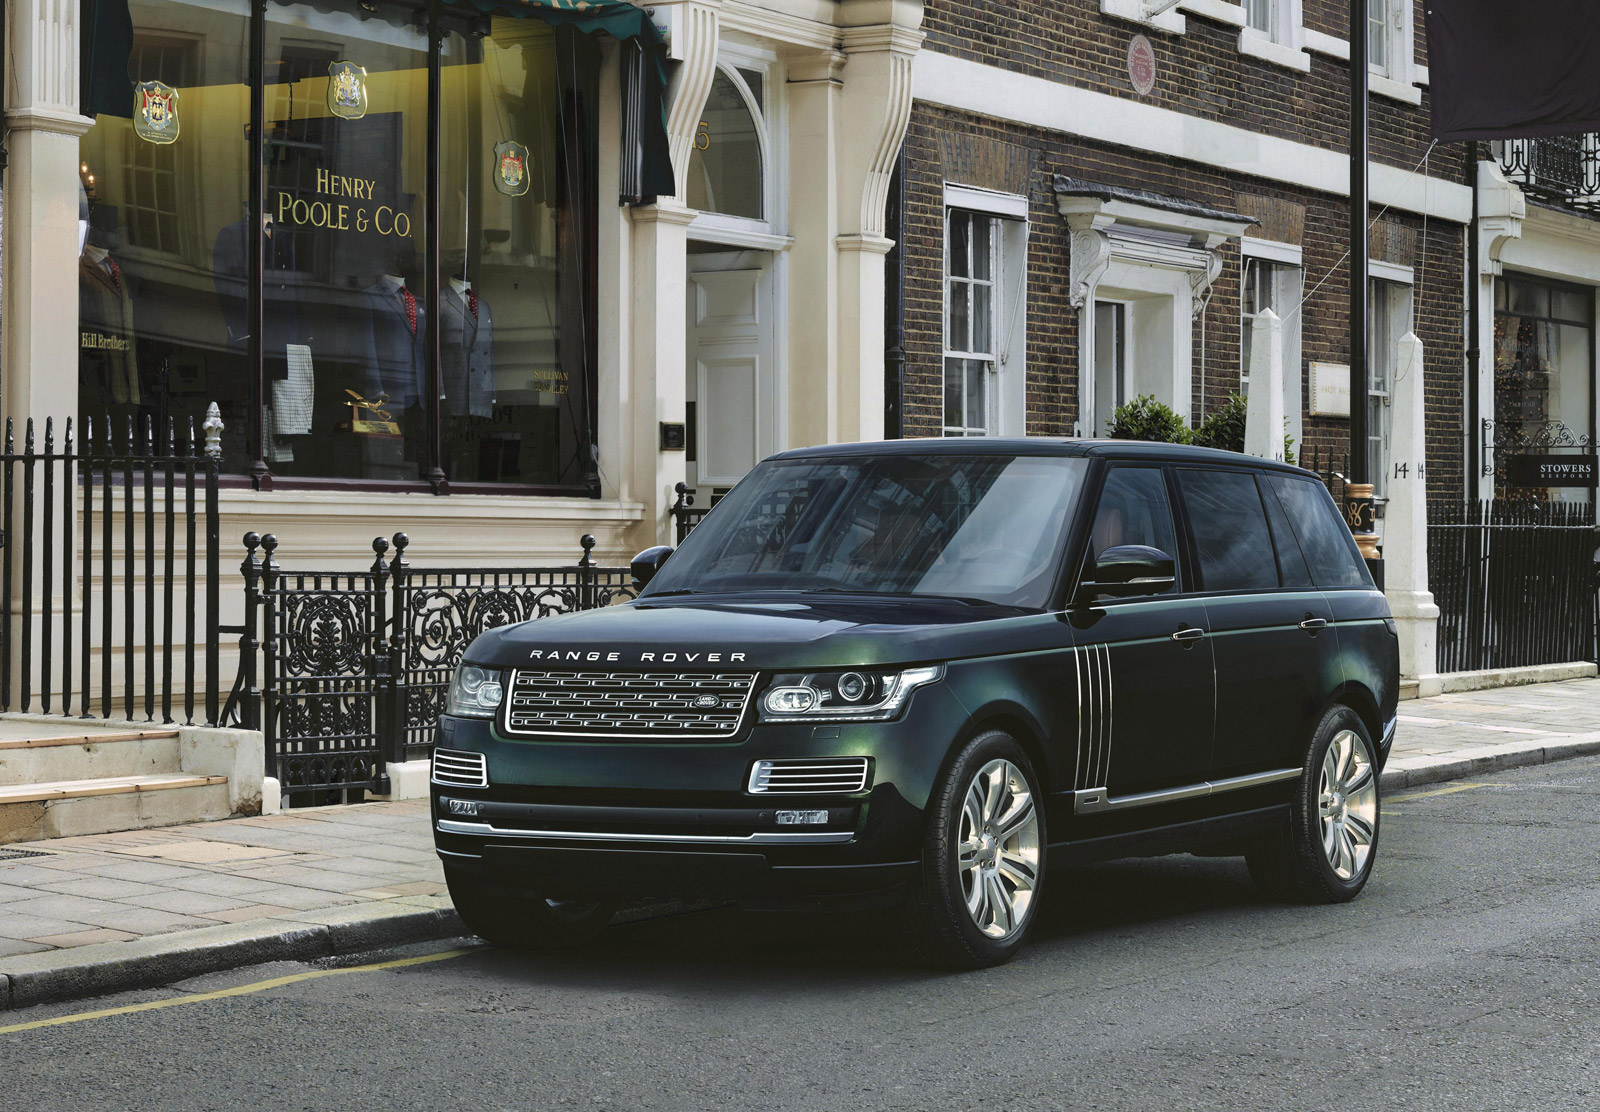 land rover svo builds an ultra luxurious range rover with holland holland. Black Bedroom Furniture Sets. Home Design Ideas